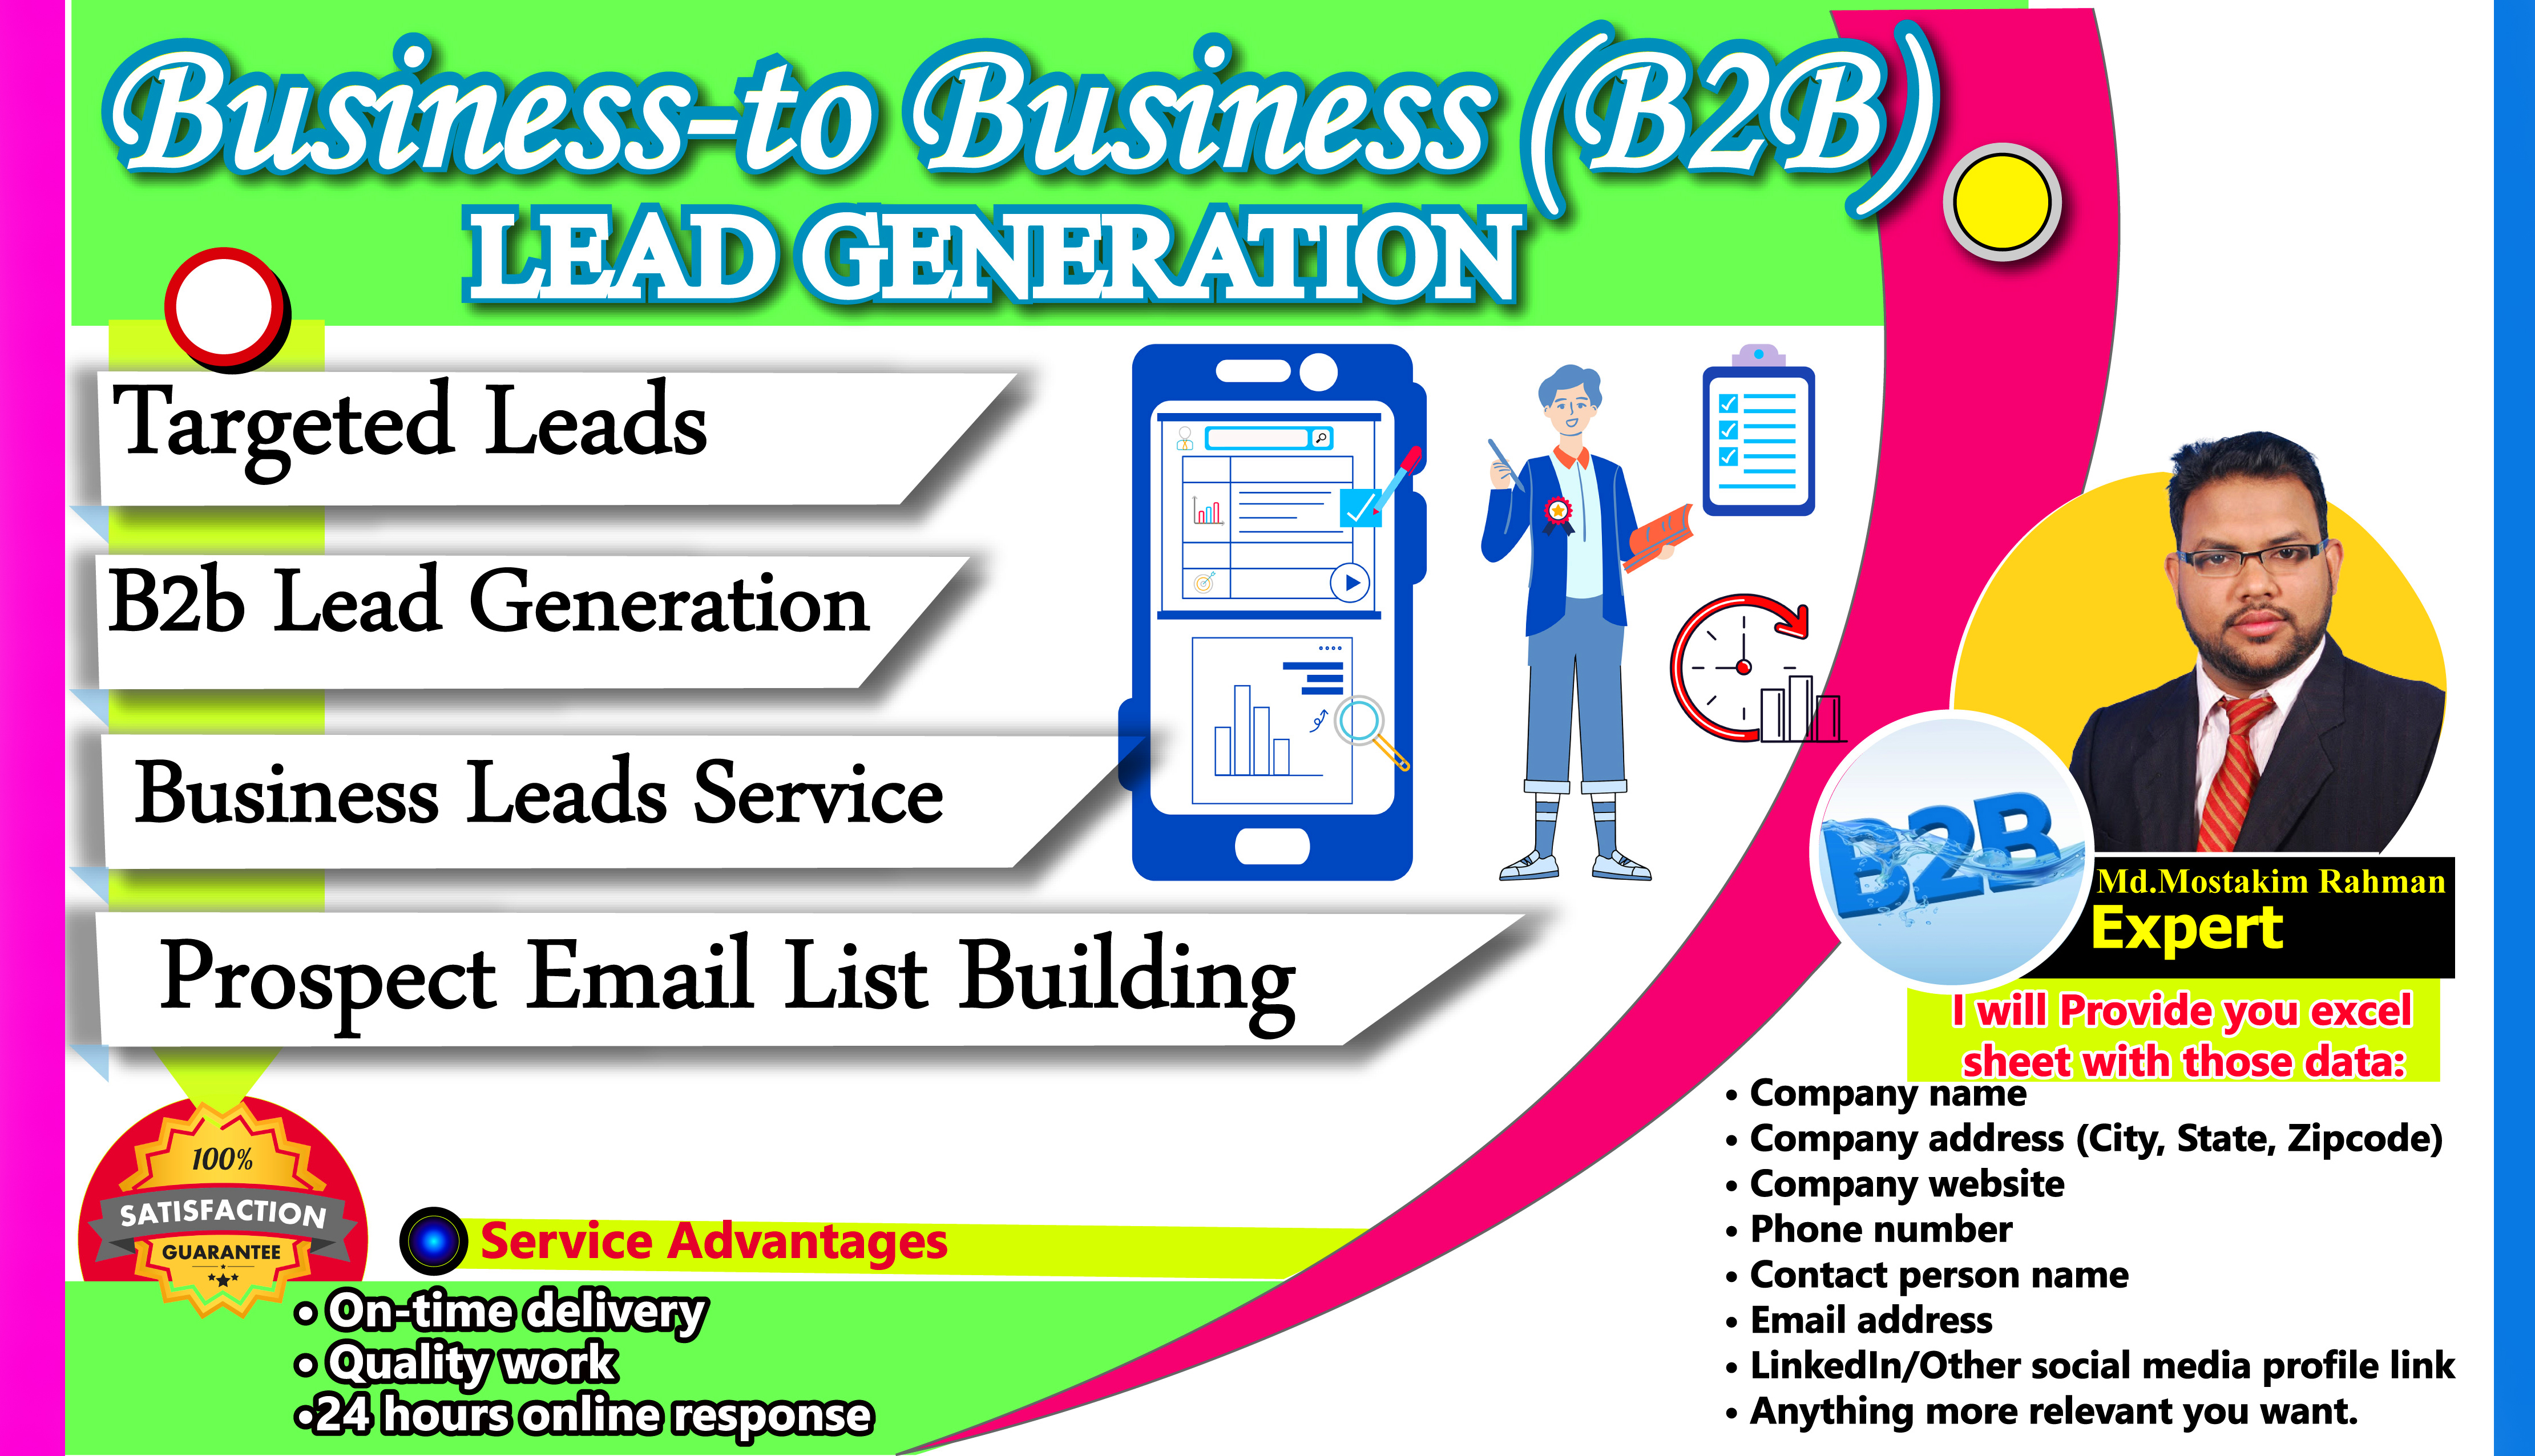 I will do B2B lead generation email address,  contract details of Similar business